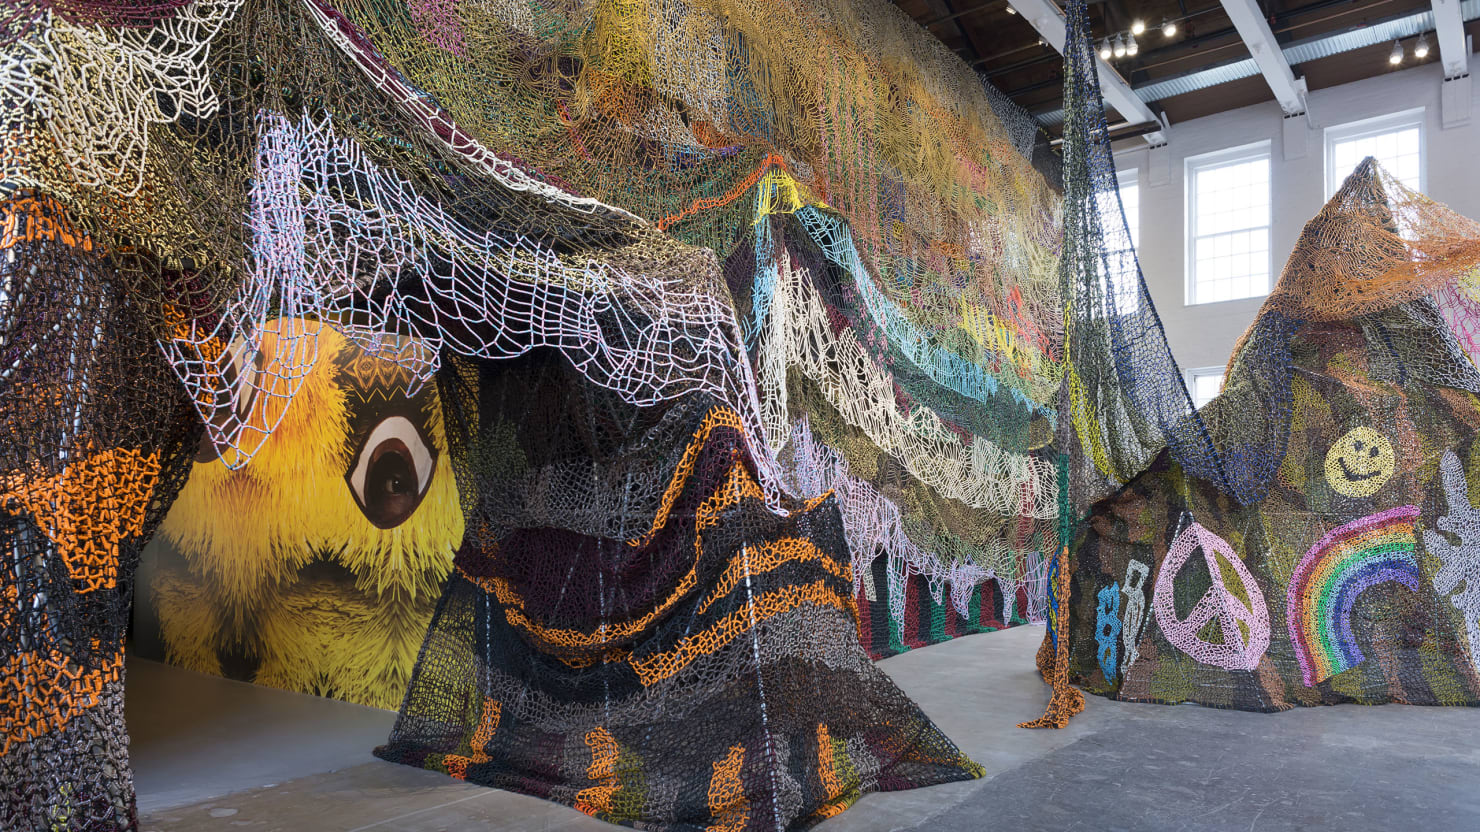 World Tech Auto >> Inside Nick Cave's Whimsical Sculpture Installations